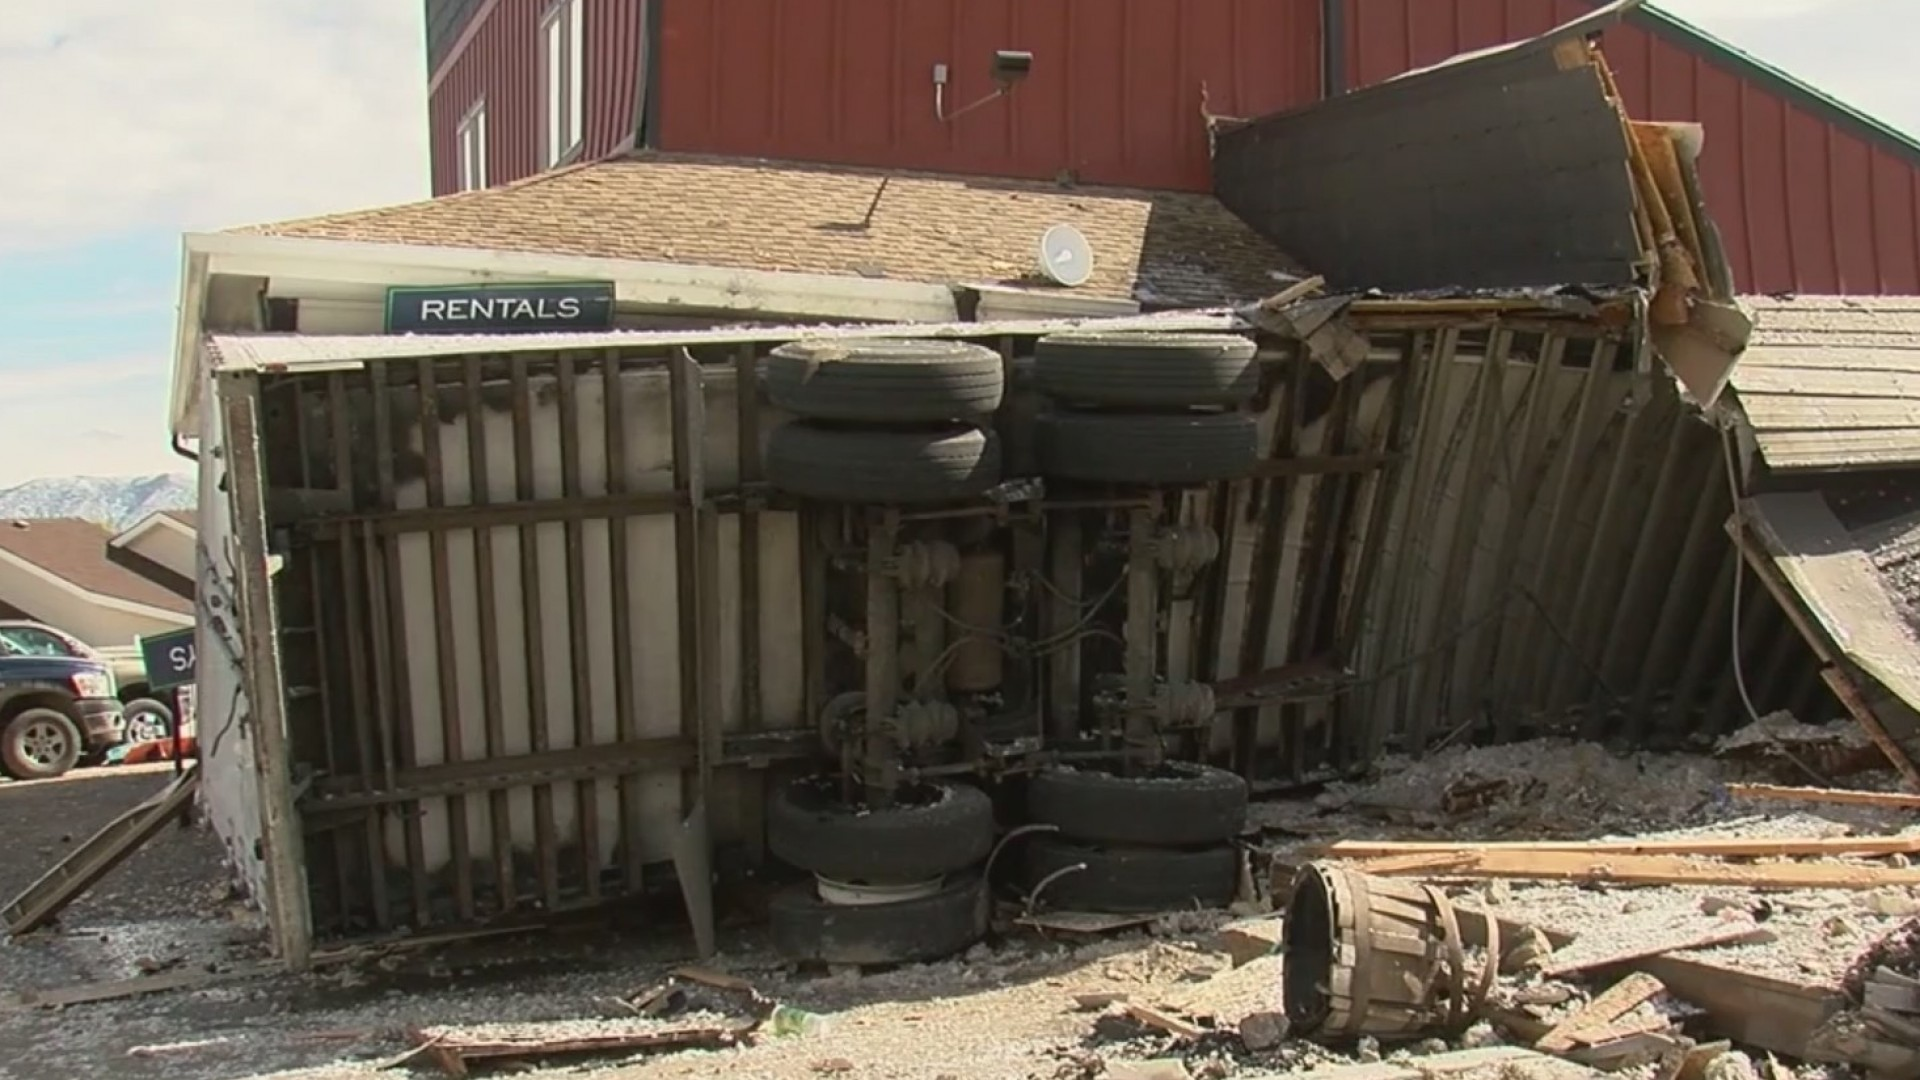 Driver_of_semi_dies_after_crashing_into__0_20181012001521